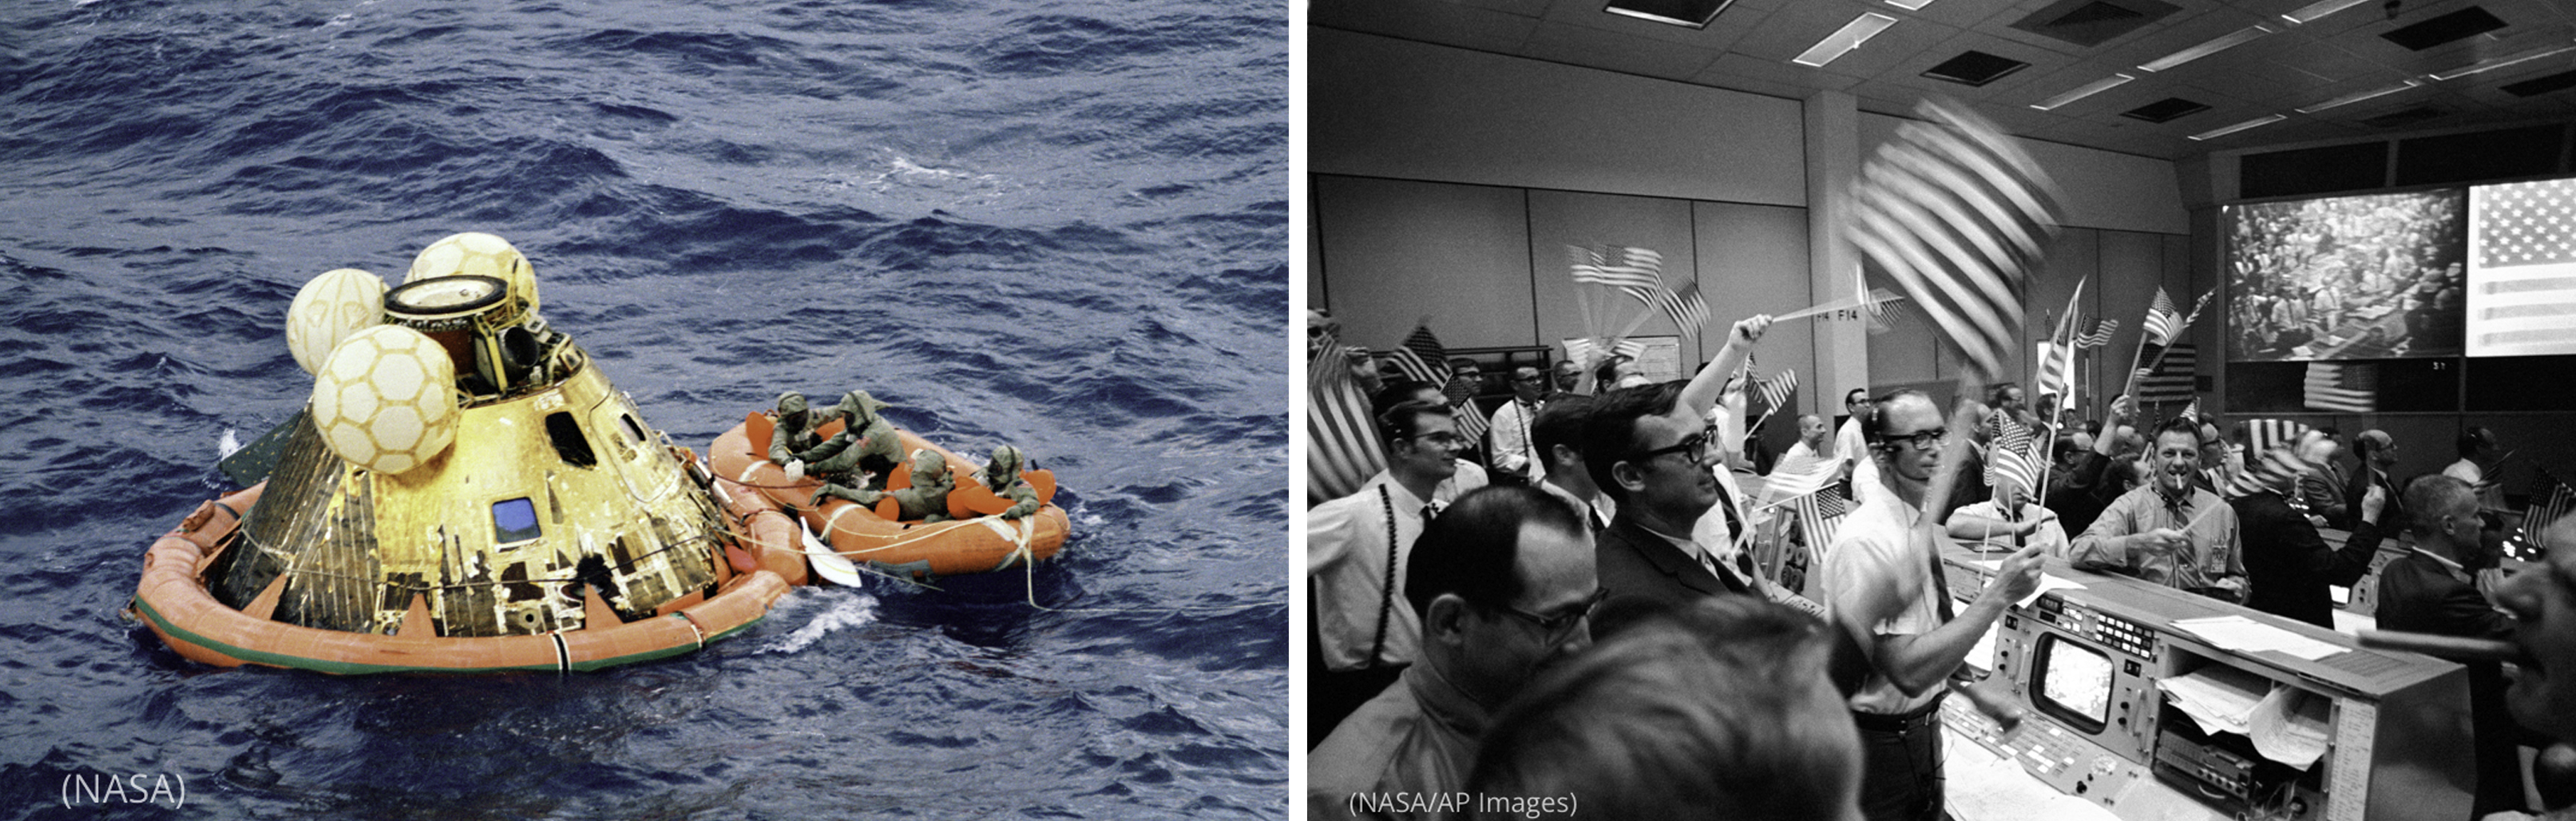 Photo of lunar module floating in ocean (NASA) next to photo of men in room with computers and large, elevated screen waving American flags (NASA/AP Images)